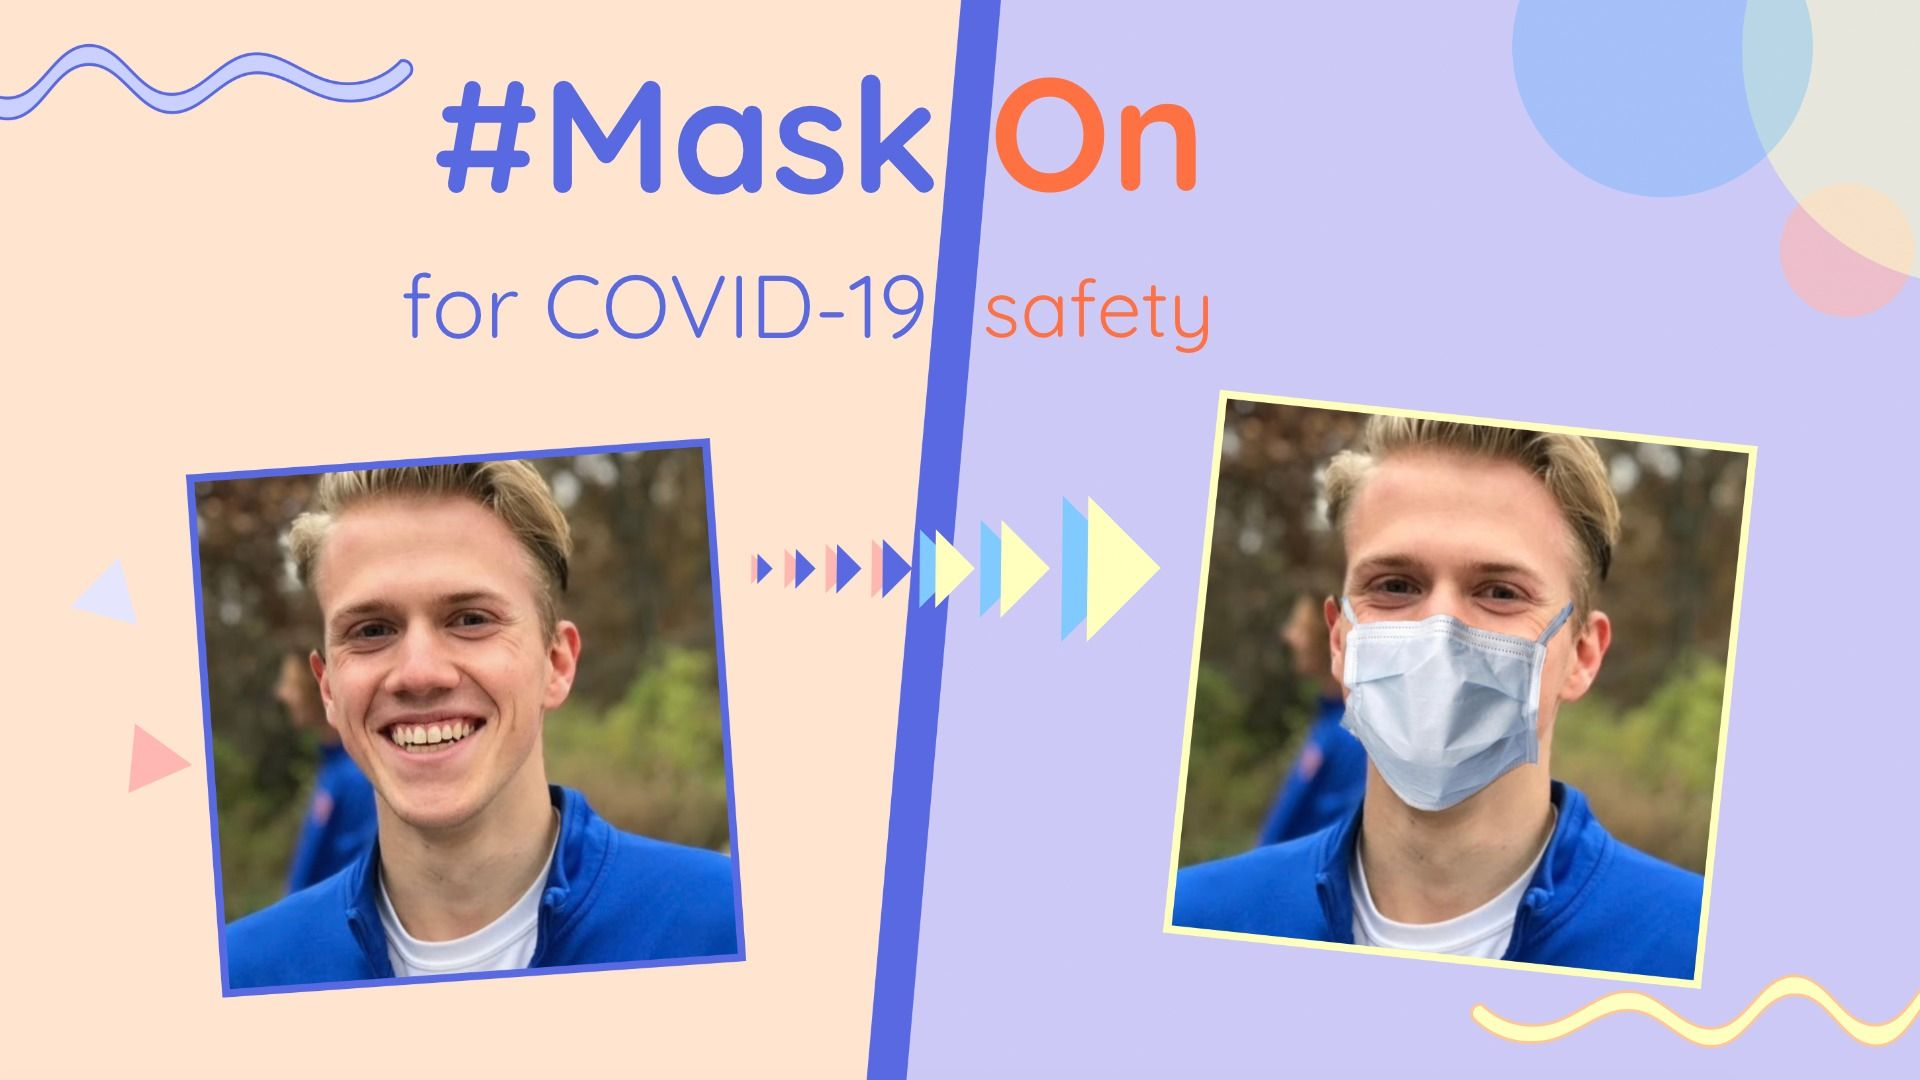 People have been adding masks to their profile pics to promote COVID-19 safety – Get your #MaskOn with this template!